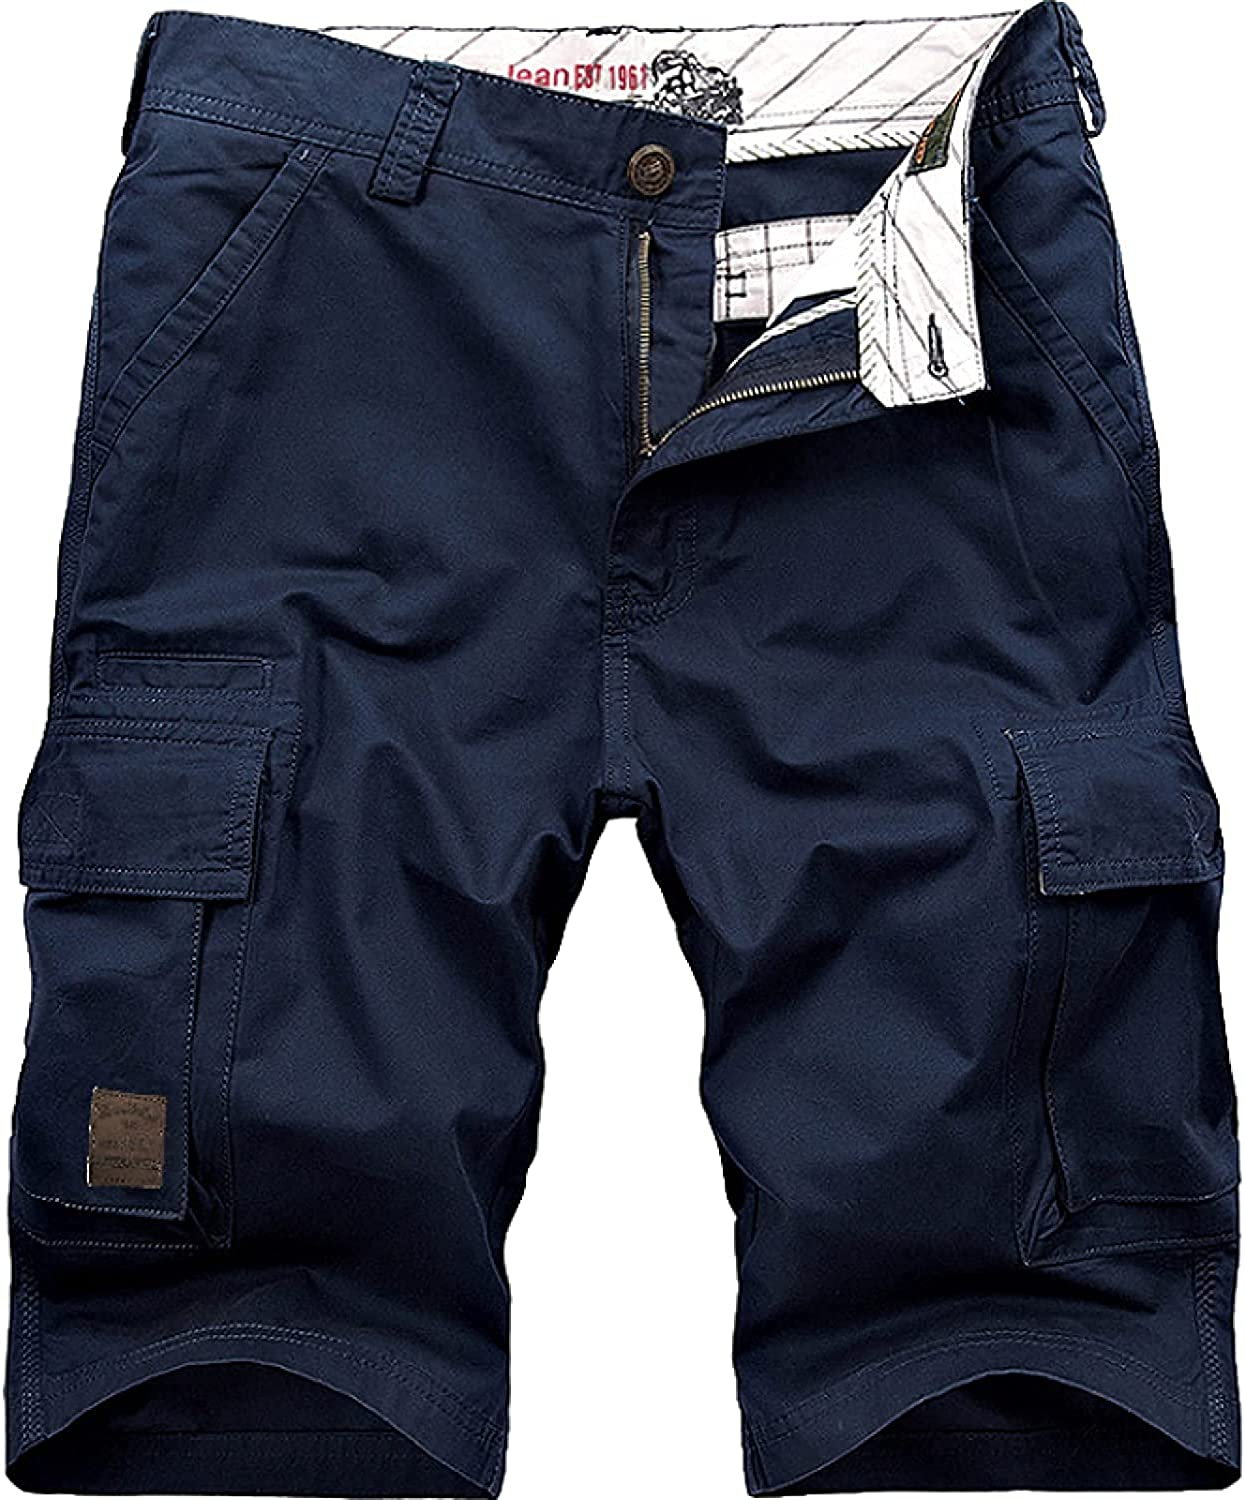 Men's Multi-Pocket Solid Color Cargo Shorts Trend Stitching Trend Large Size